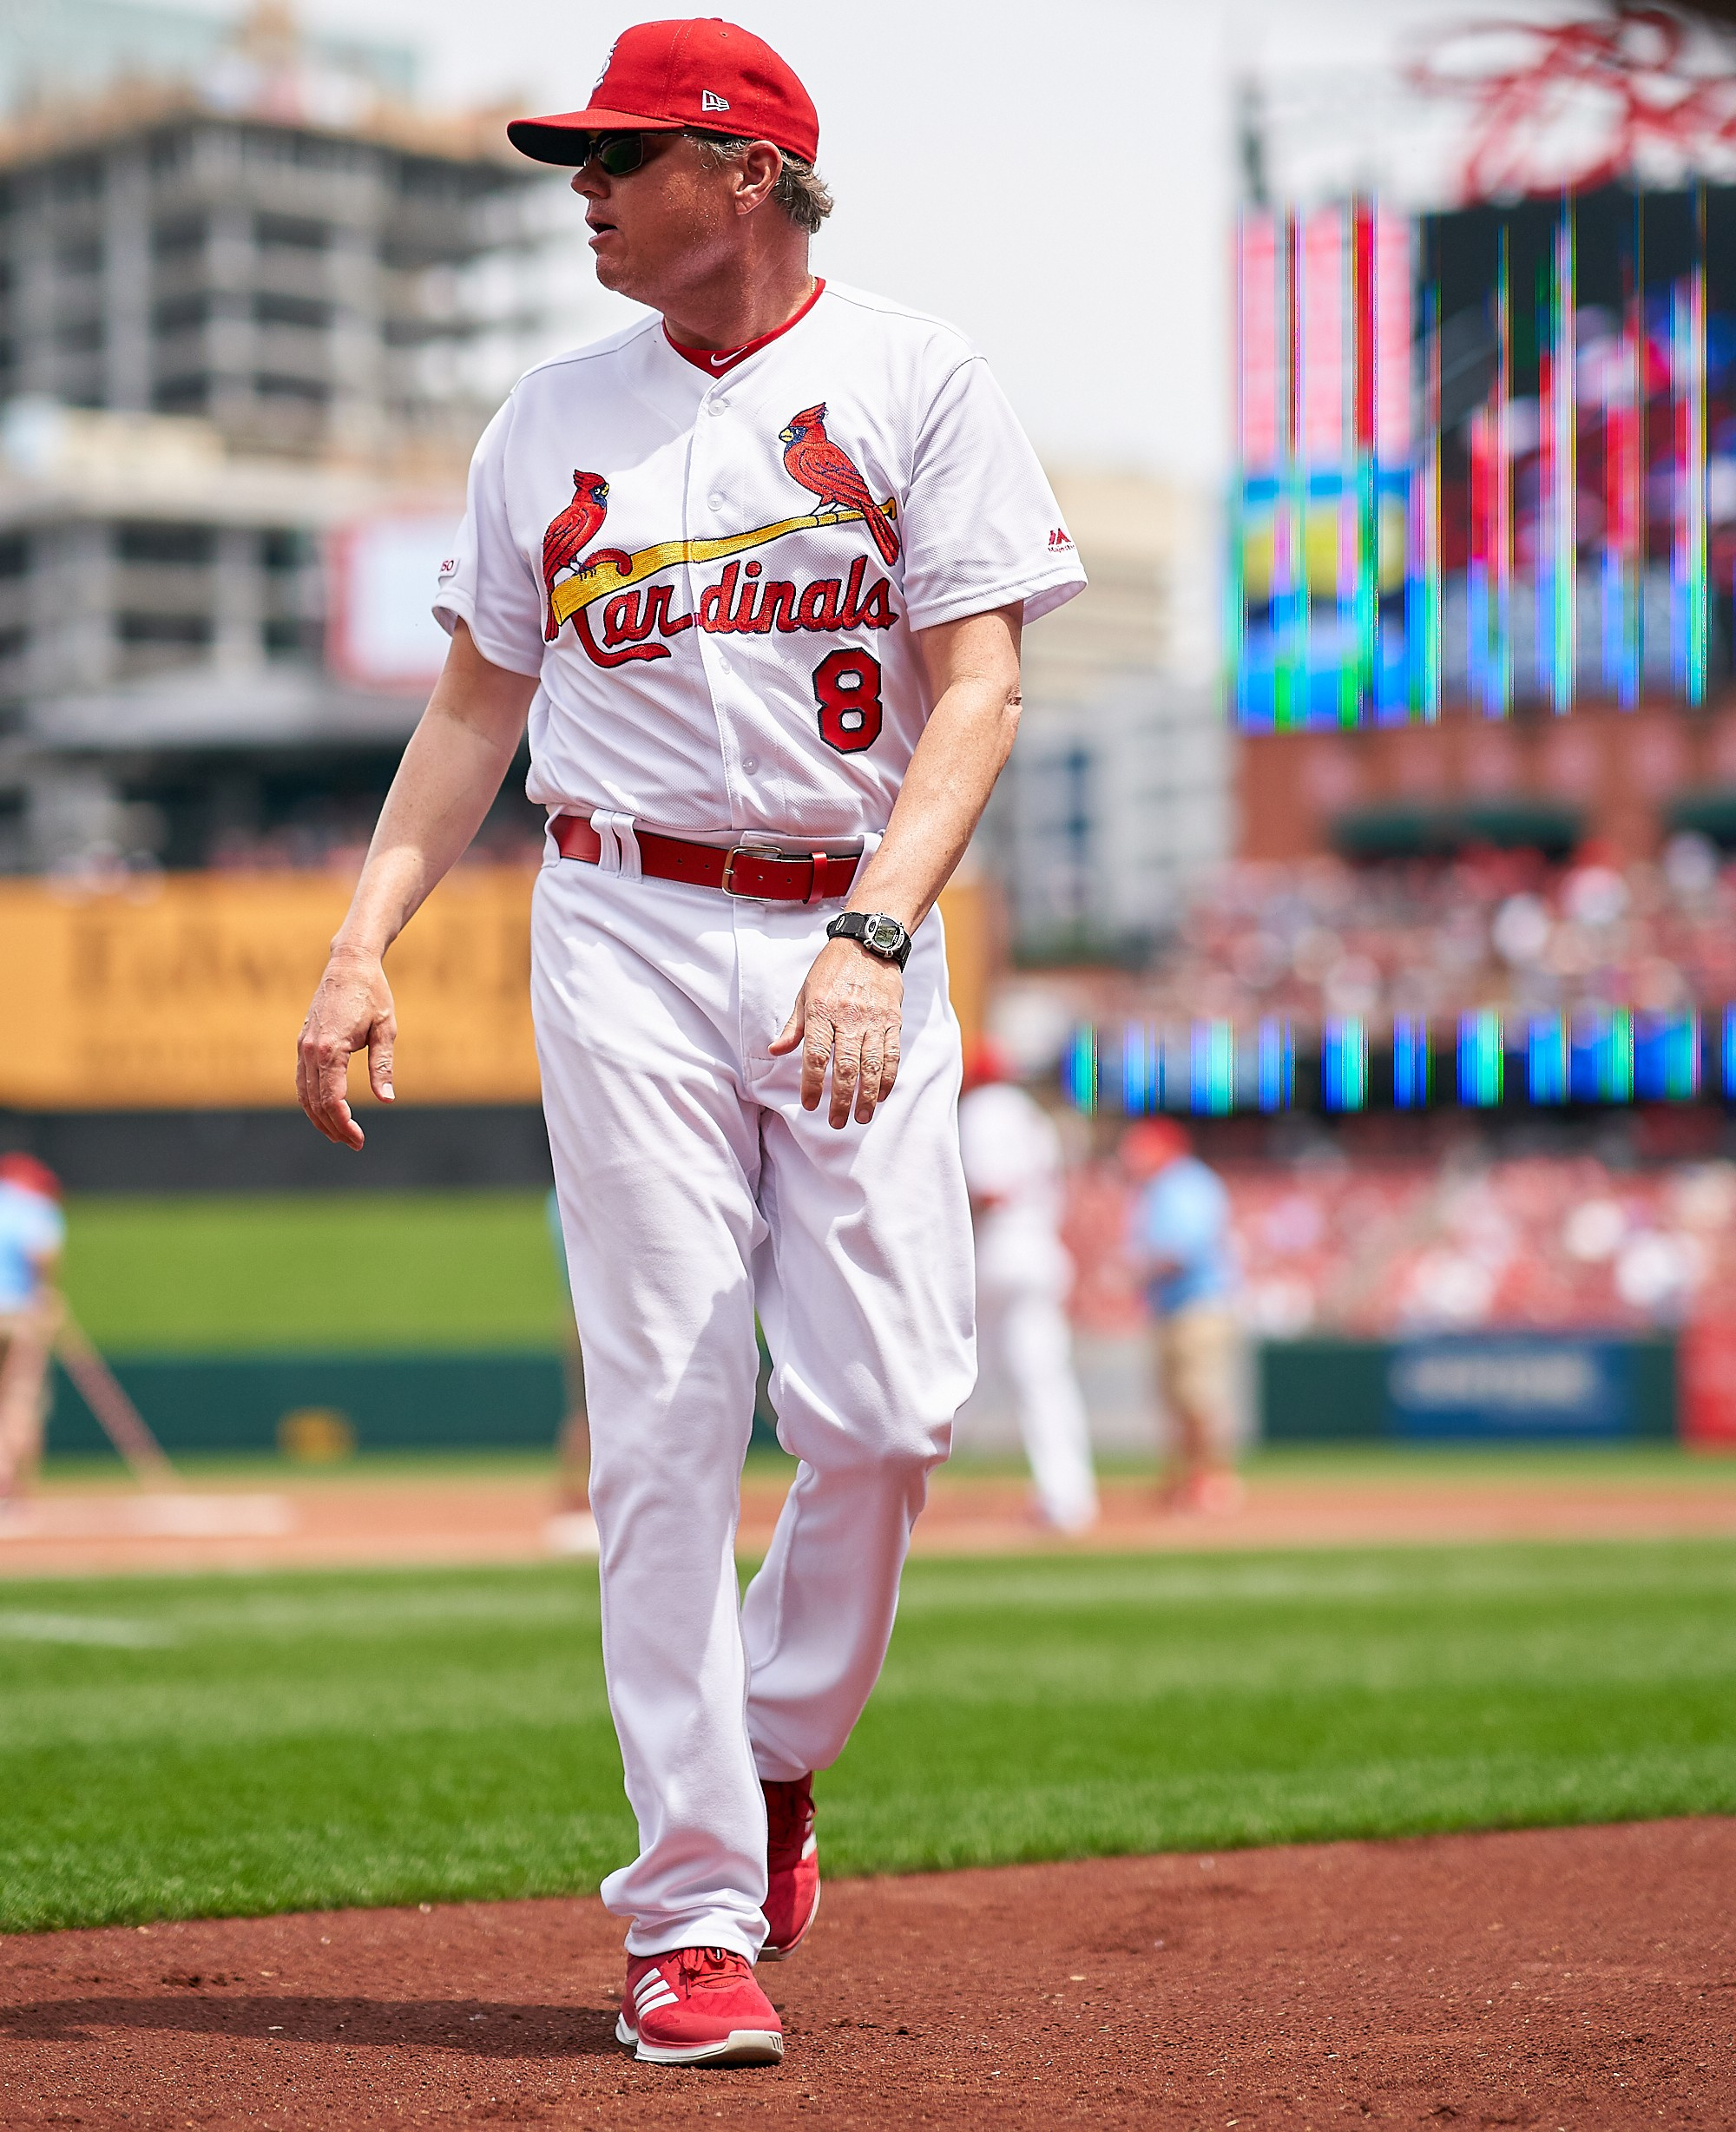 Beat Me in St  Louis: The Cardinals' Crisis | From My Seat